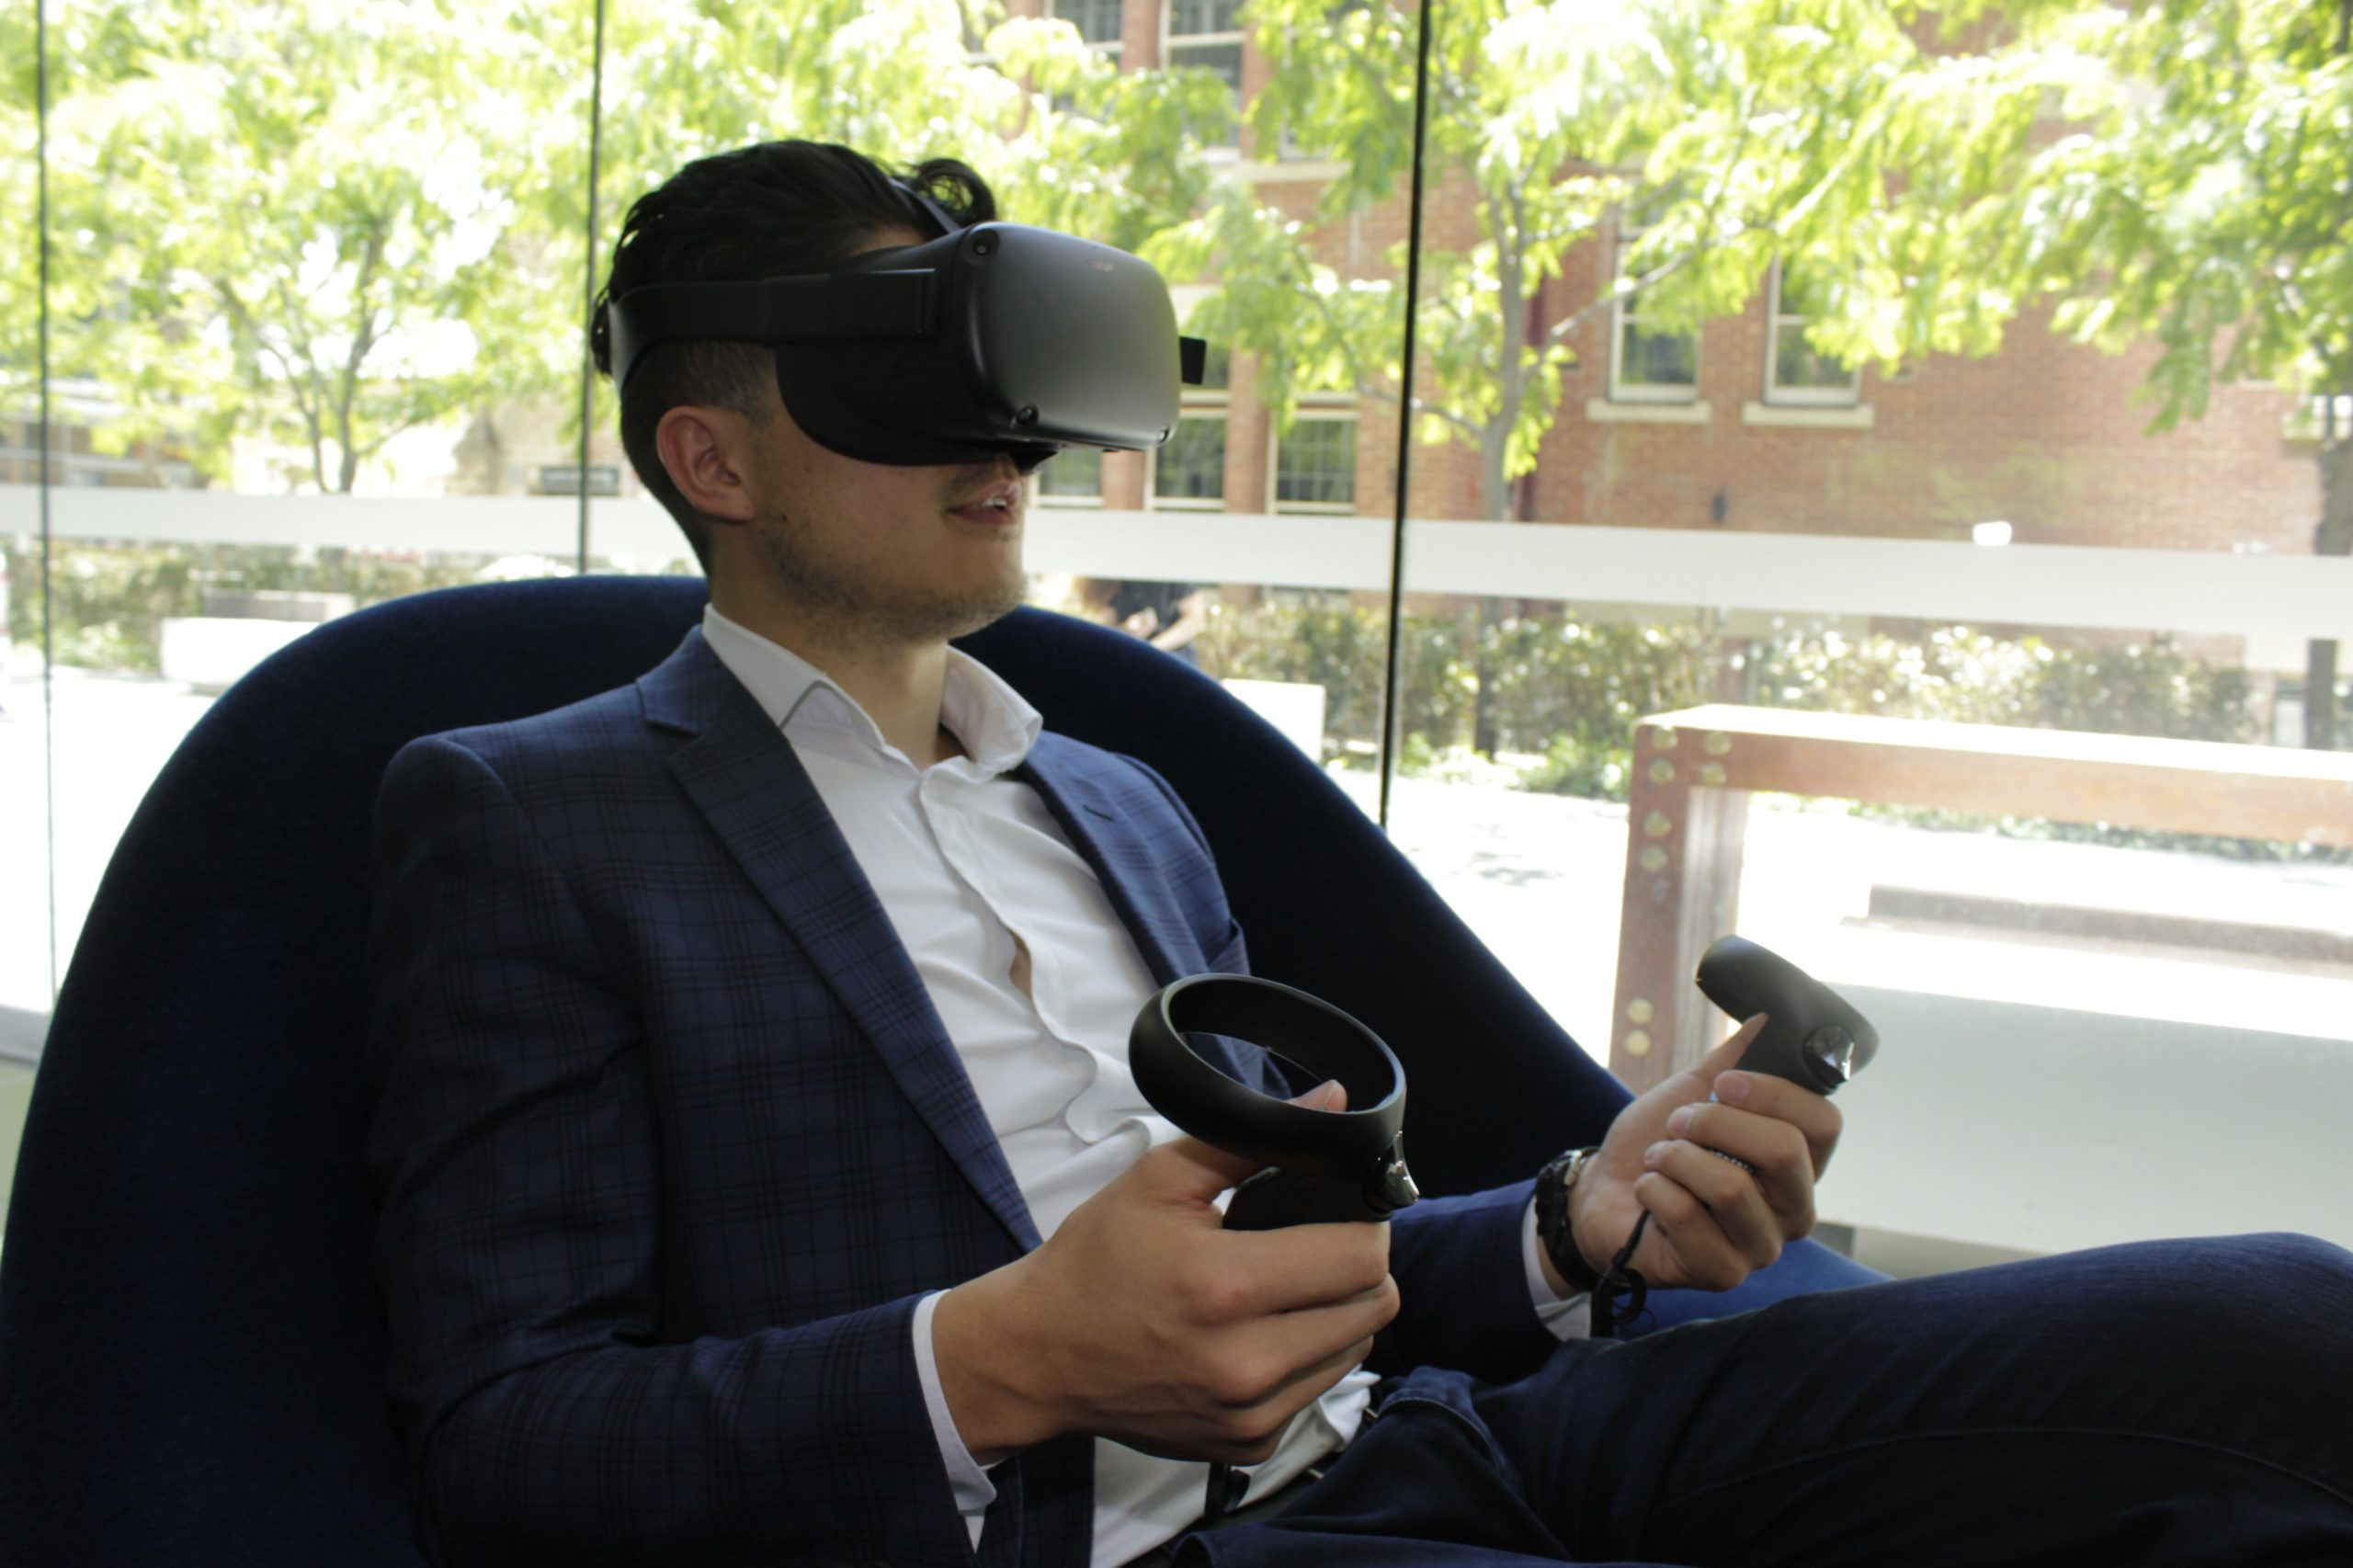 Virtual reality: The soft skills training secret weapon